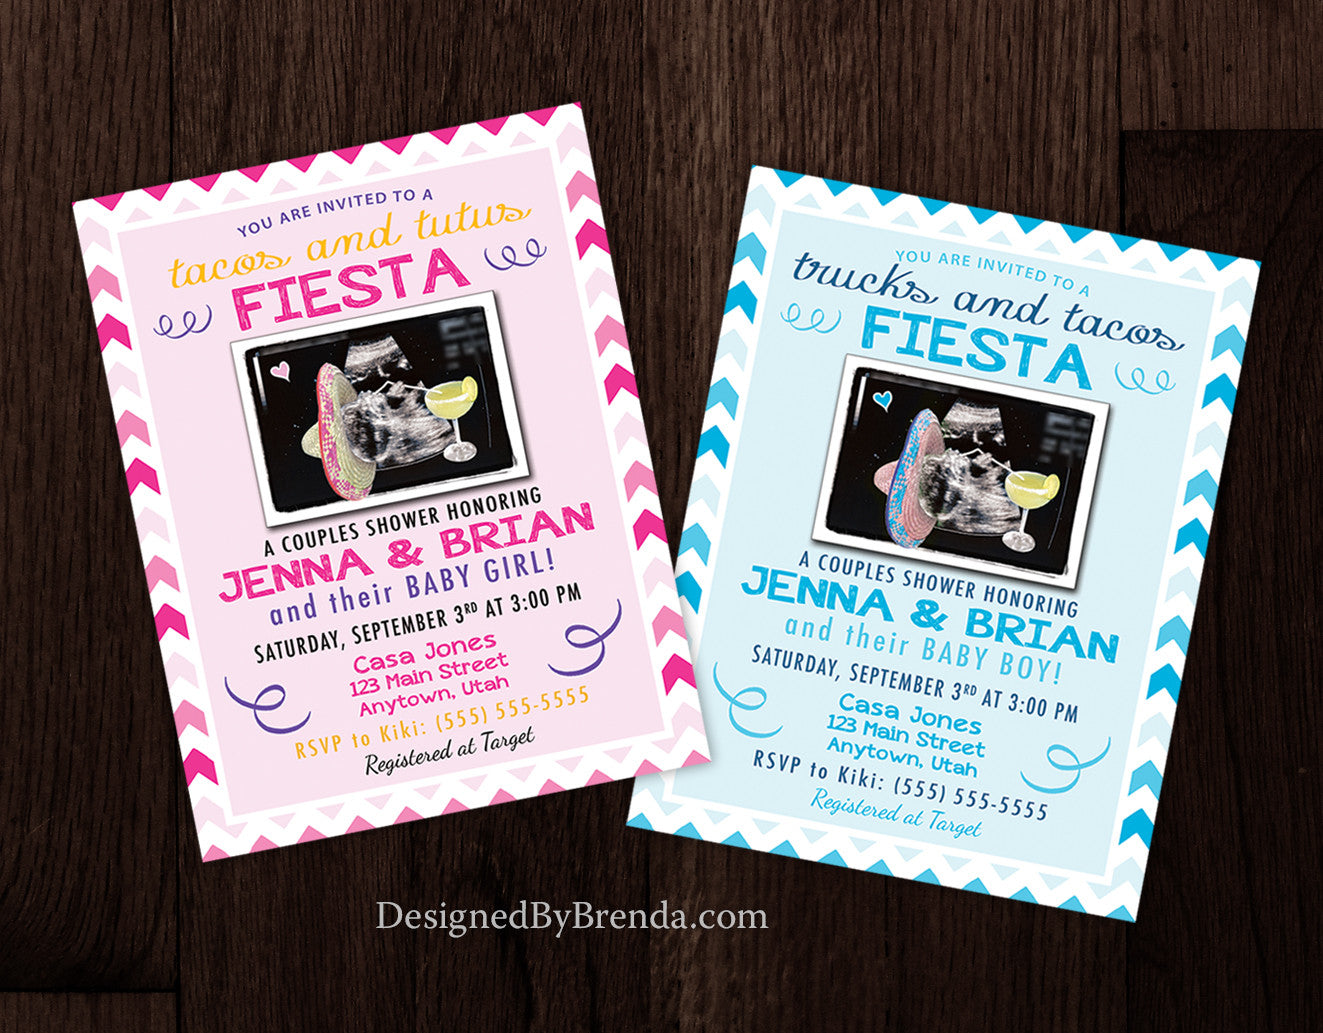 Festive Baby Shower Invitation With Ultrasound Colorful Fiesta